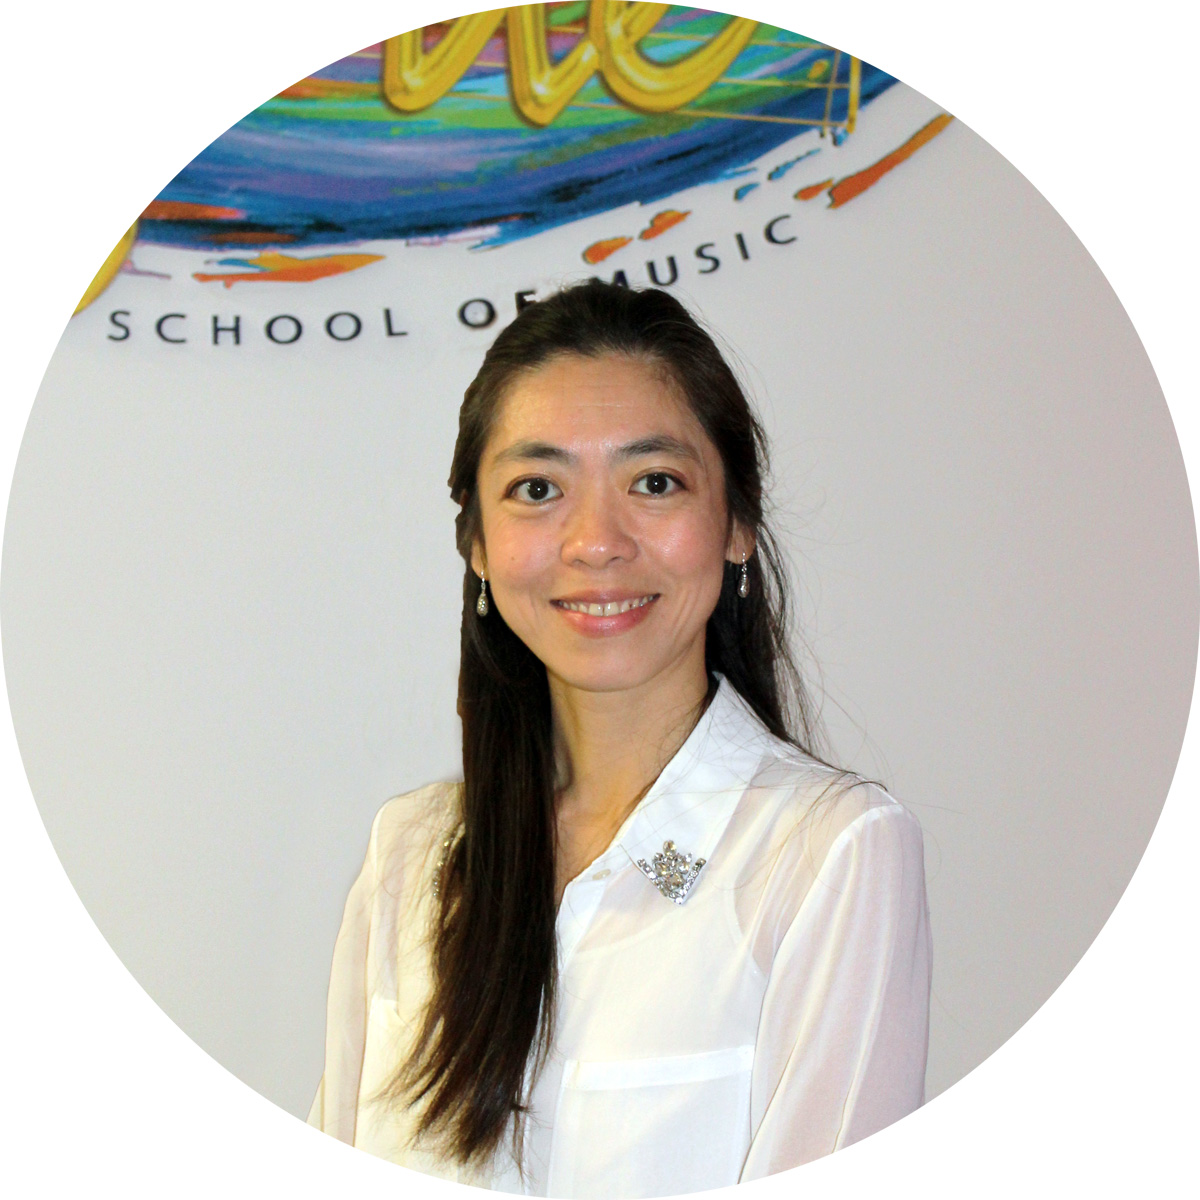 Jackie-Leong-Director-at-Forte-School-of-Music-Success-Perth